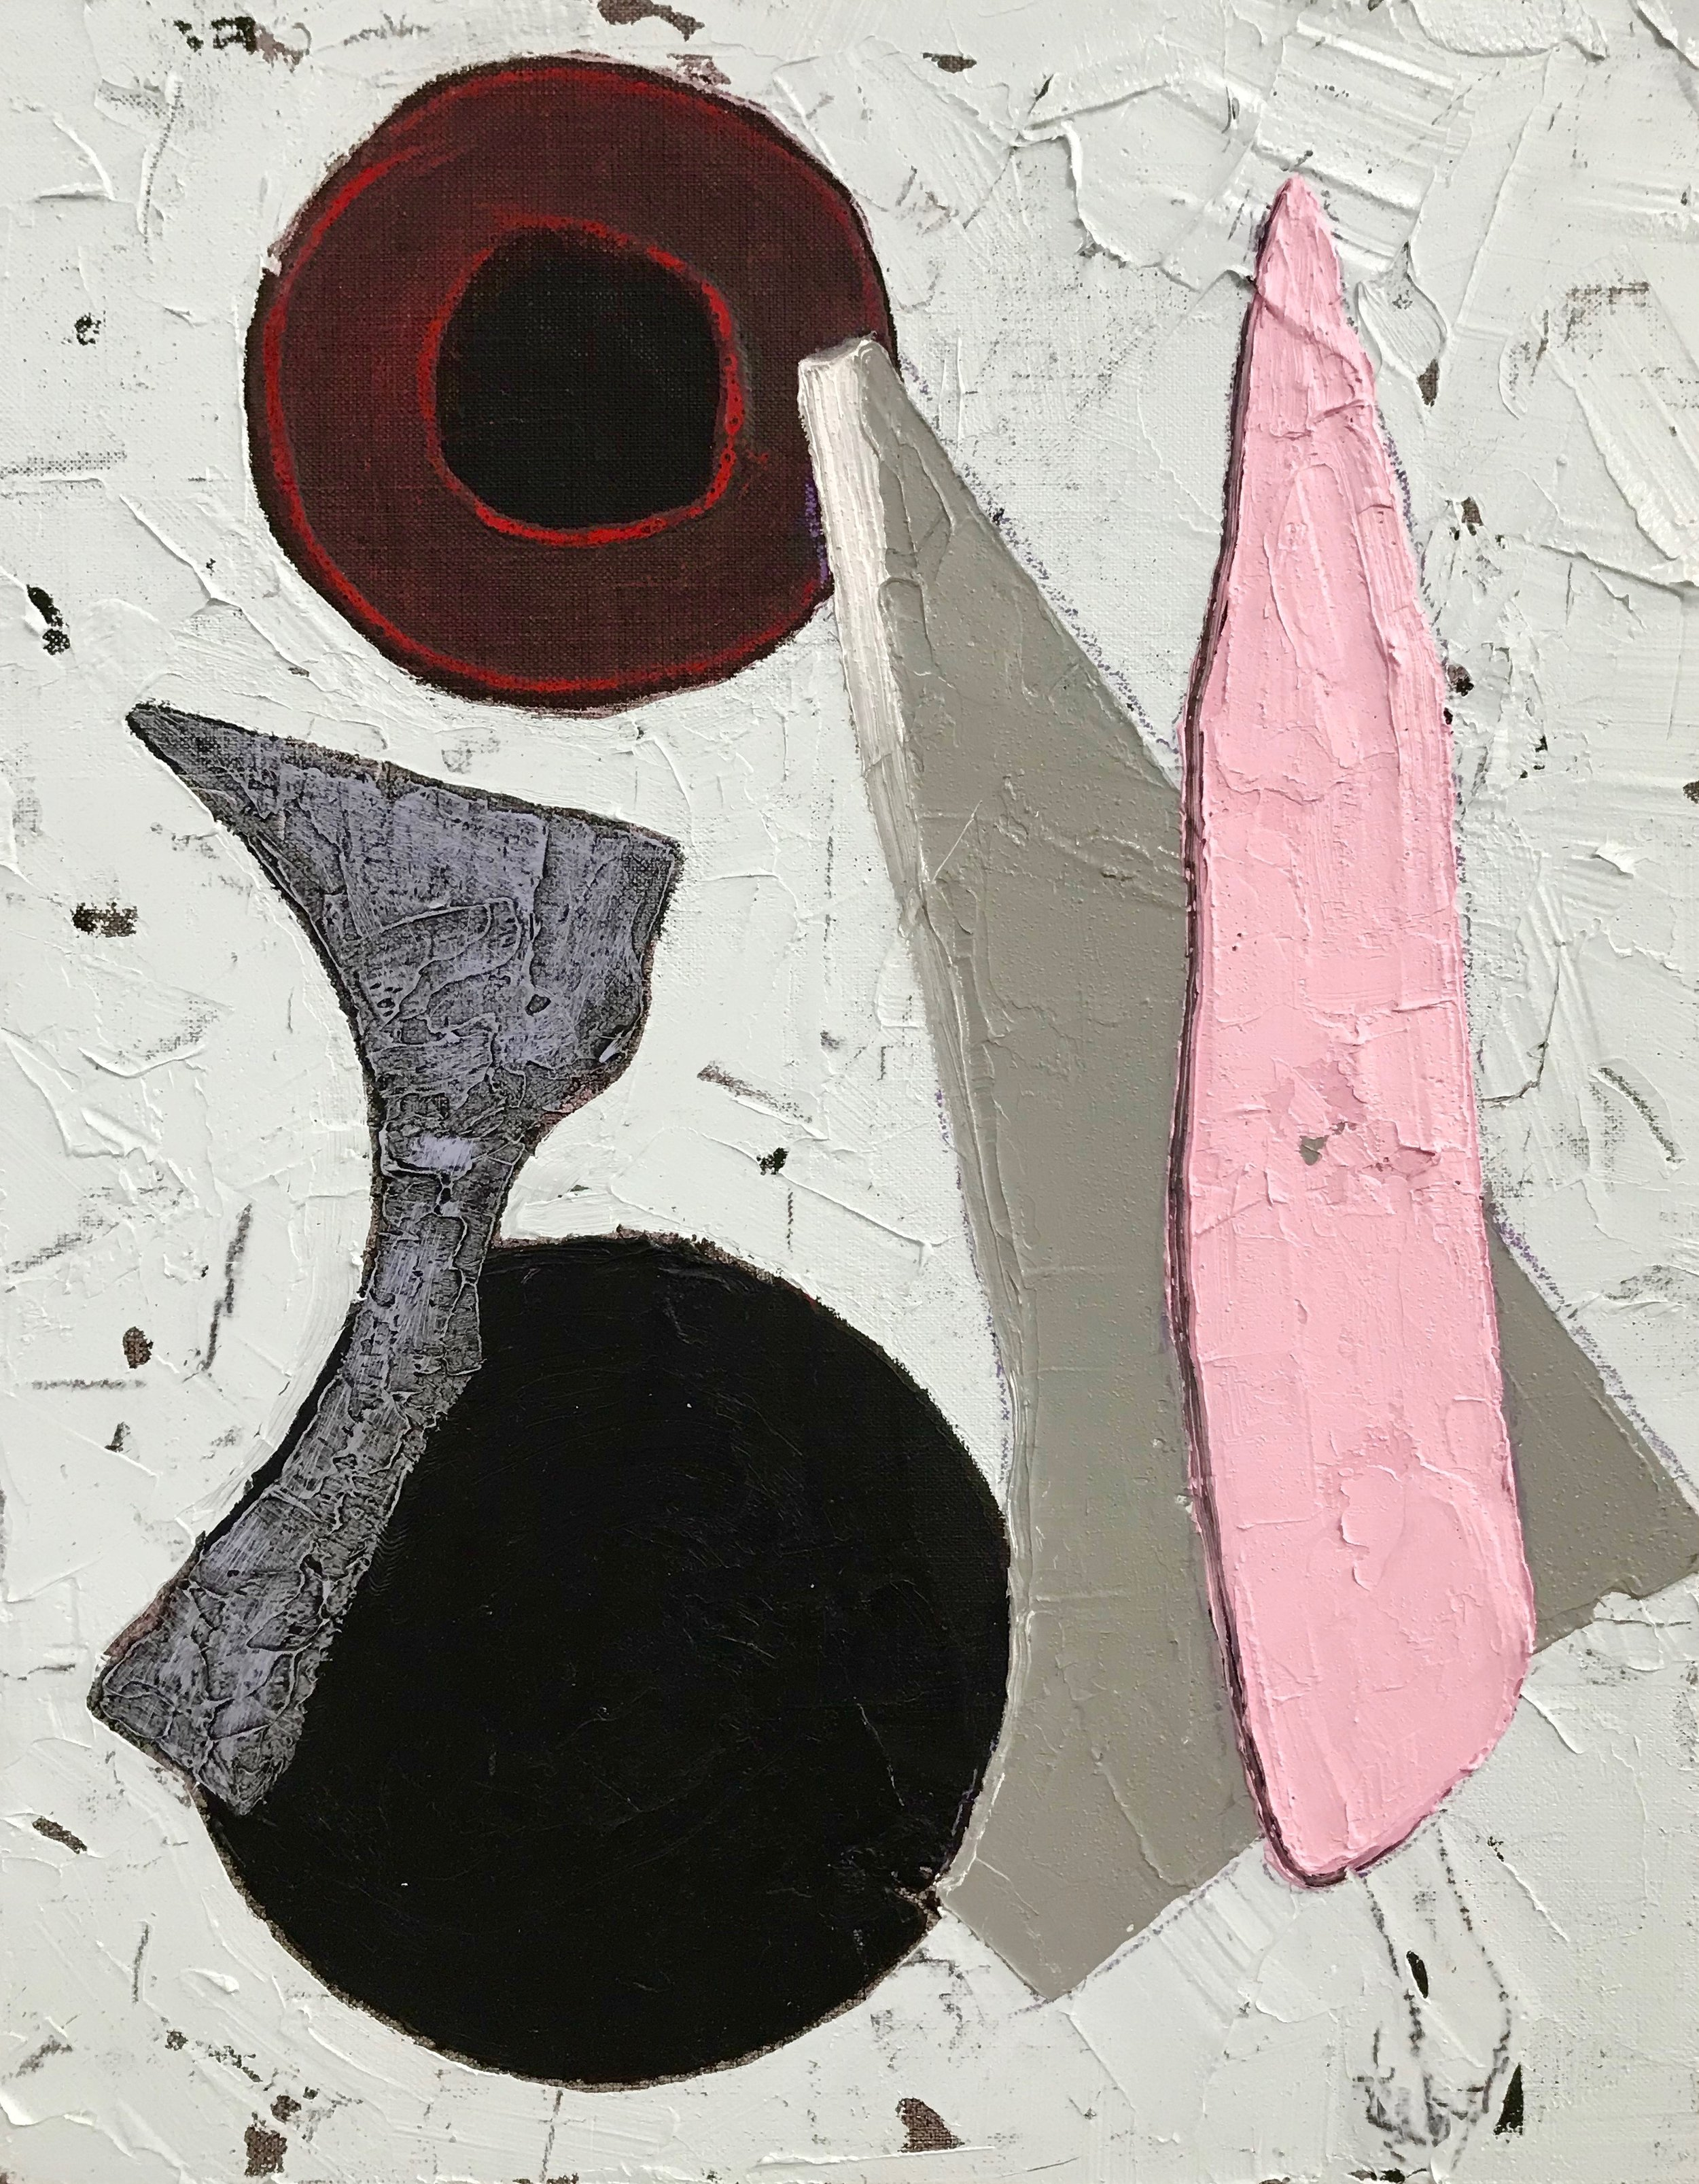 PETER SHARP  Pointed , 2019 oil and acrylic on linen 45 x 36 cm